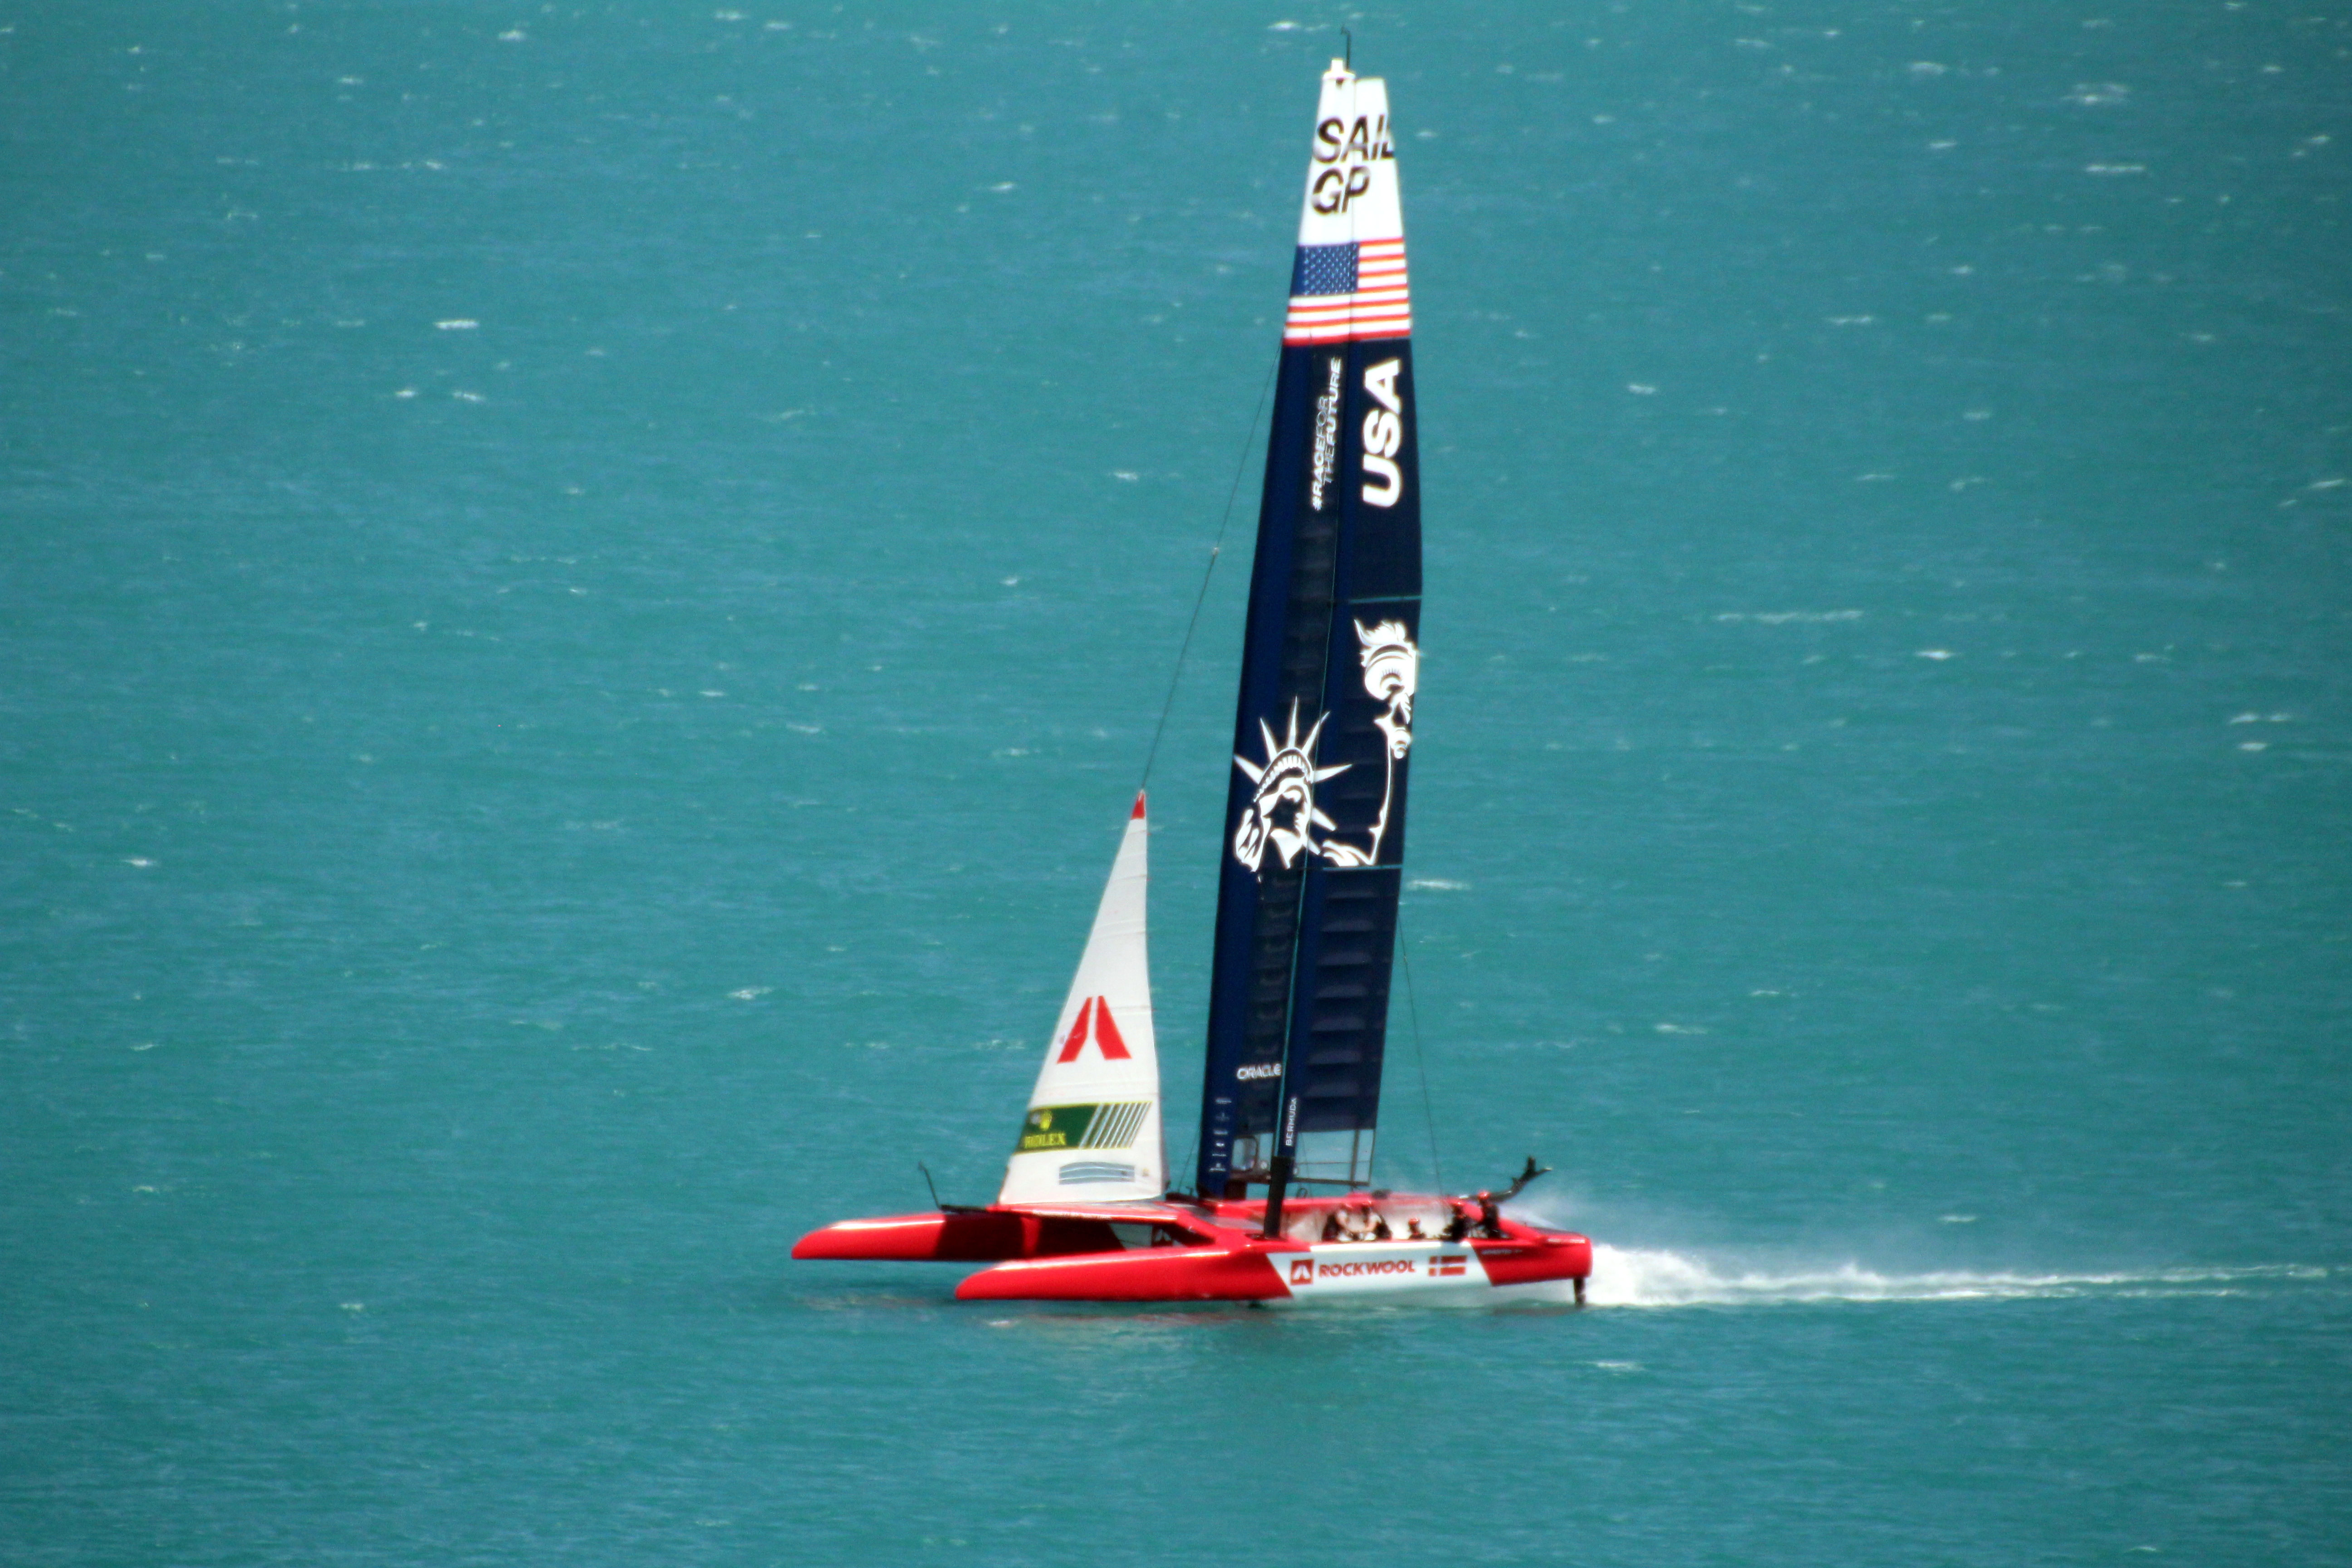 SailGP are Advertising On-water Spectator Experience (Sailing)